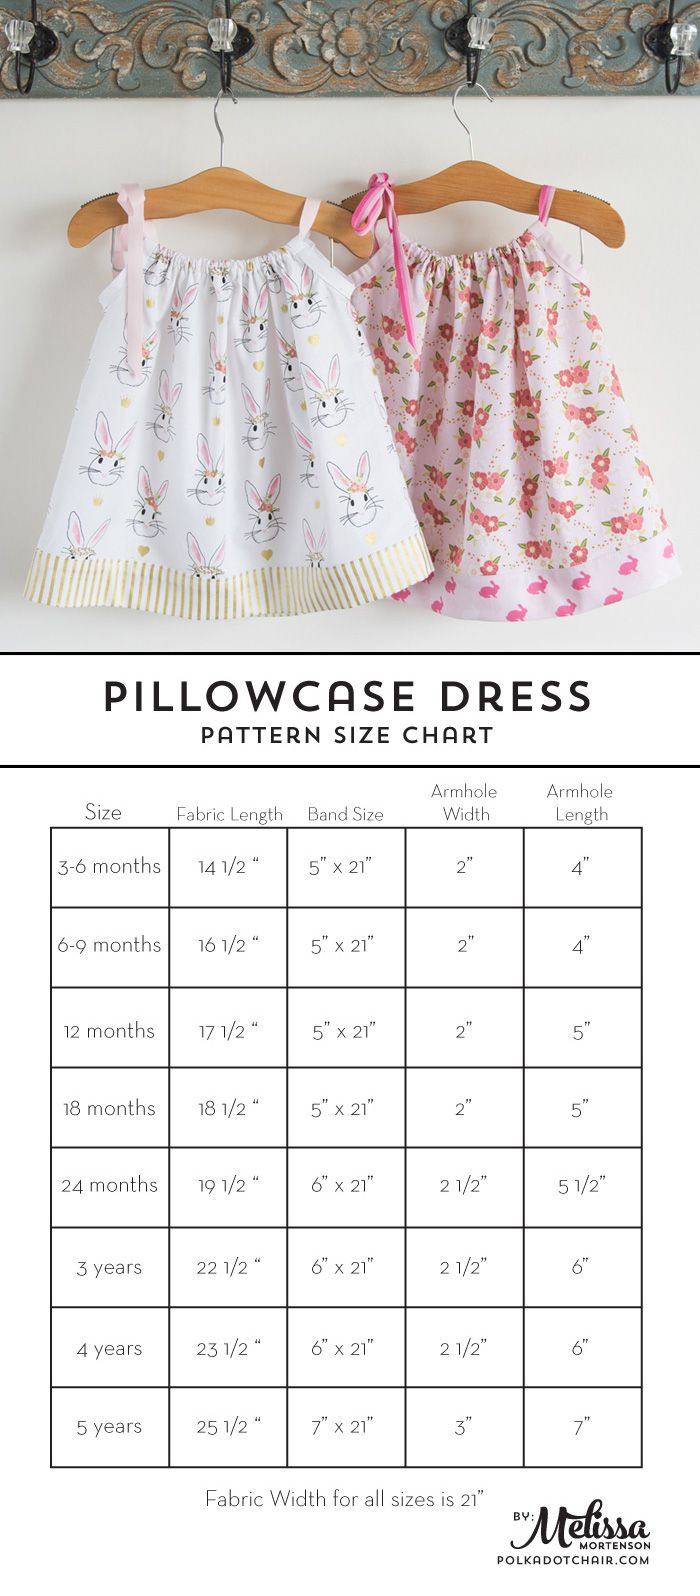 Learn how to sew a pillow case dress with this Pillowcase Dress Tutorial. Includ...